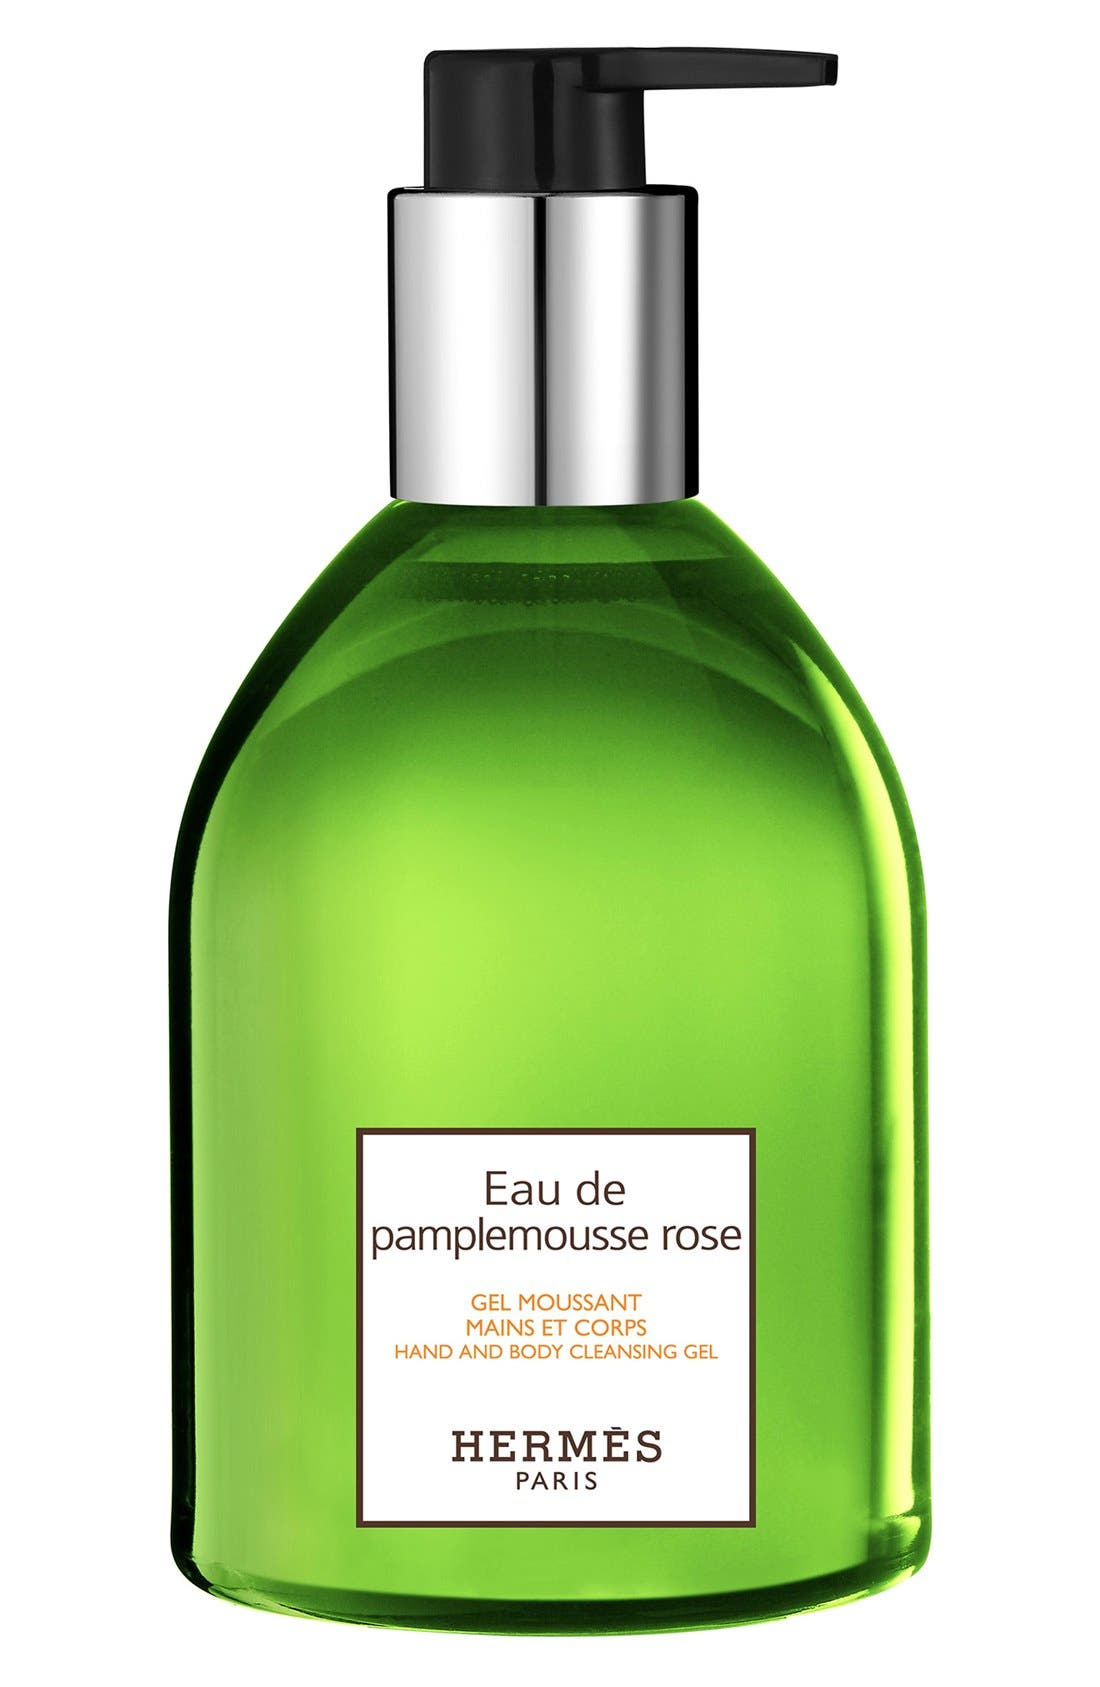 Hermès Eau de Pamplemousse Rose - Hand and body cleansing gel